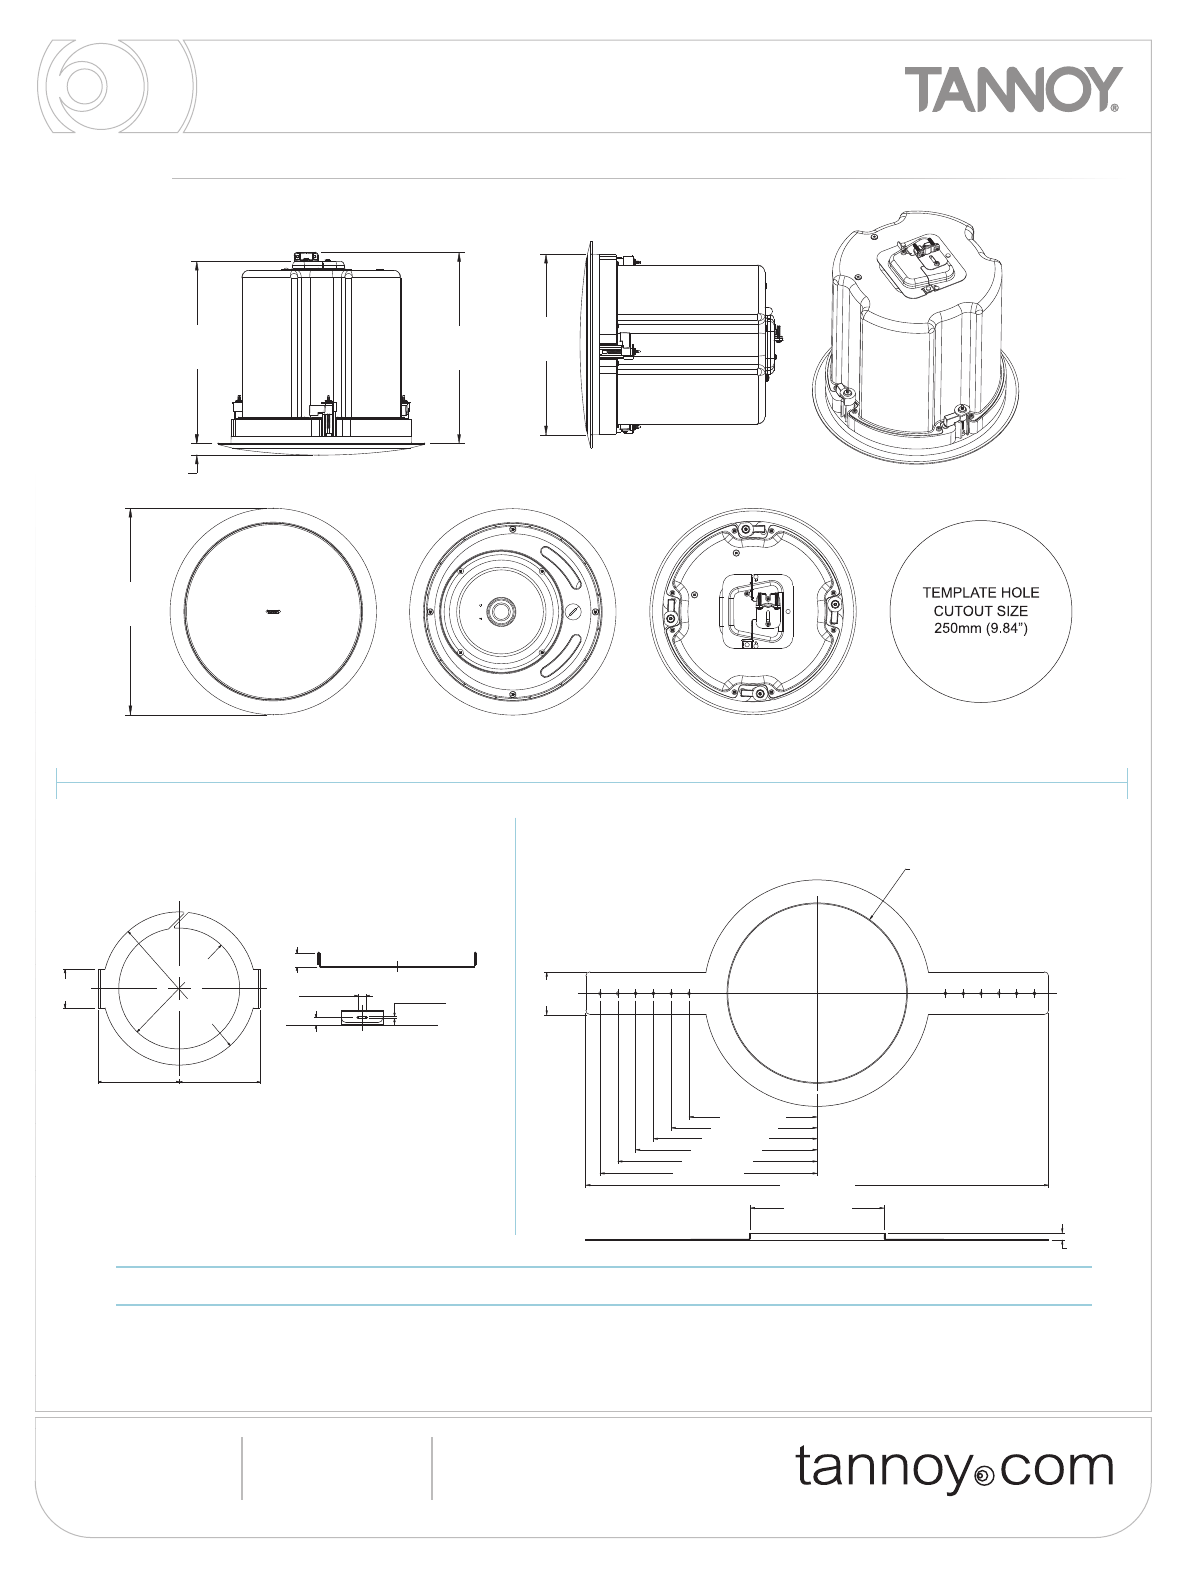 Steps tannoy united kingdom page 6 of tannoy portable speaker cvs6 user guide manualsonline rh